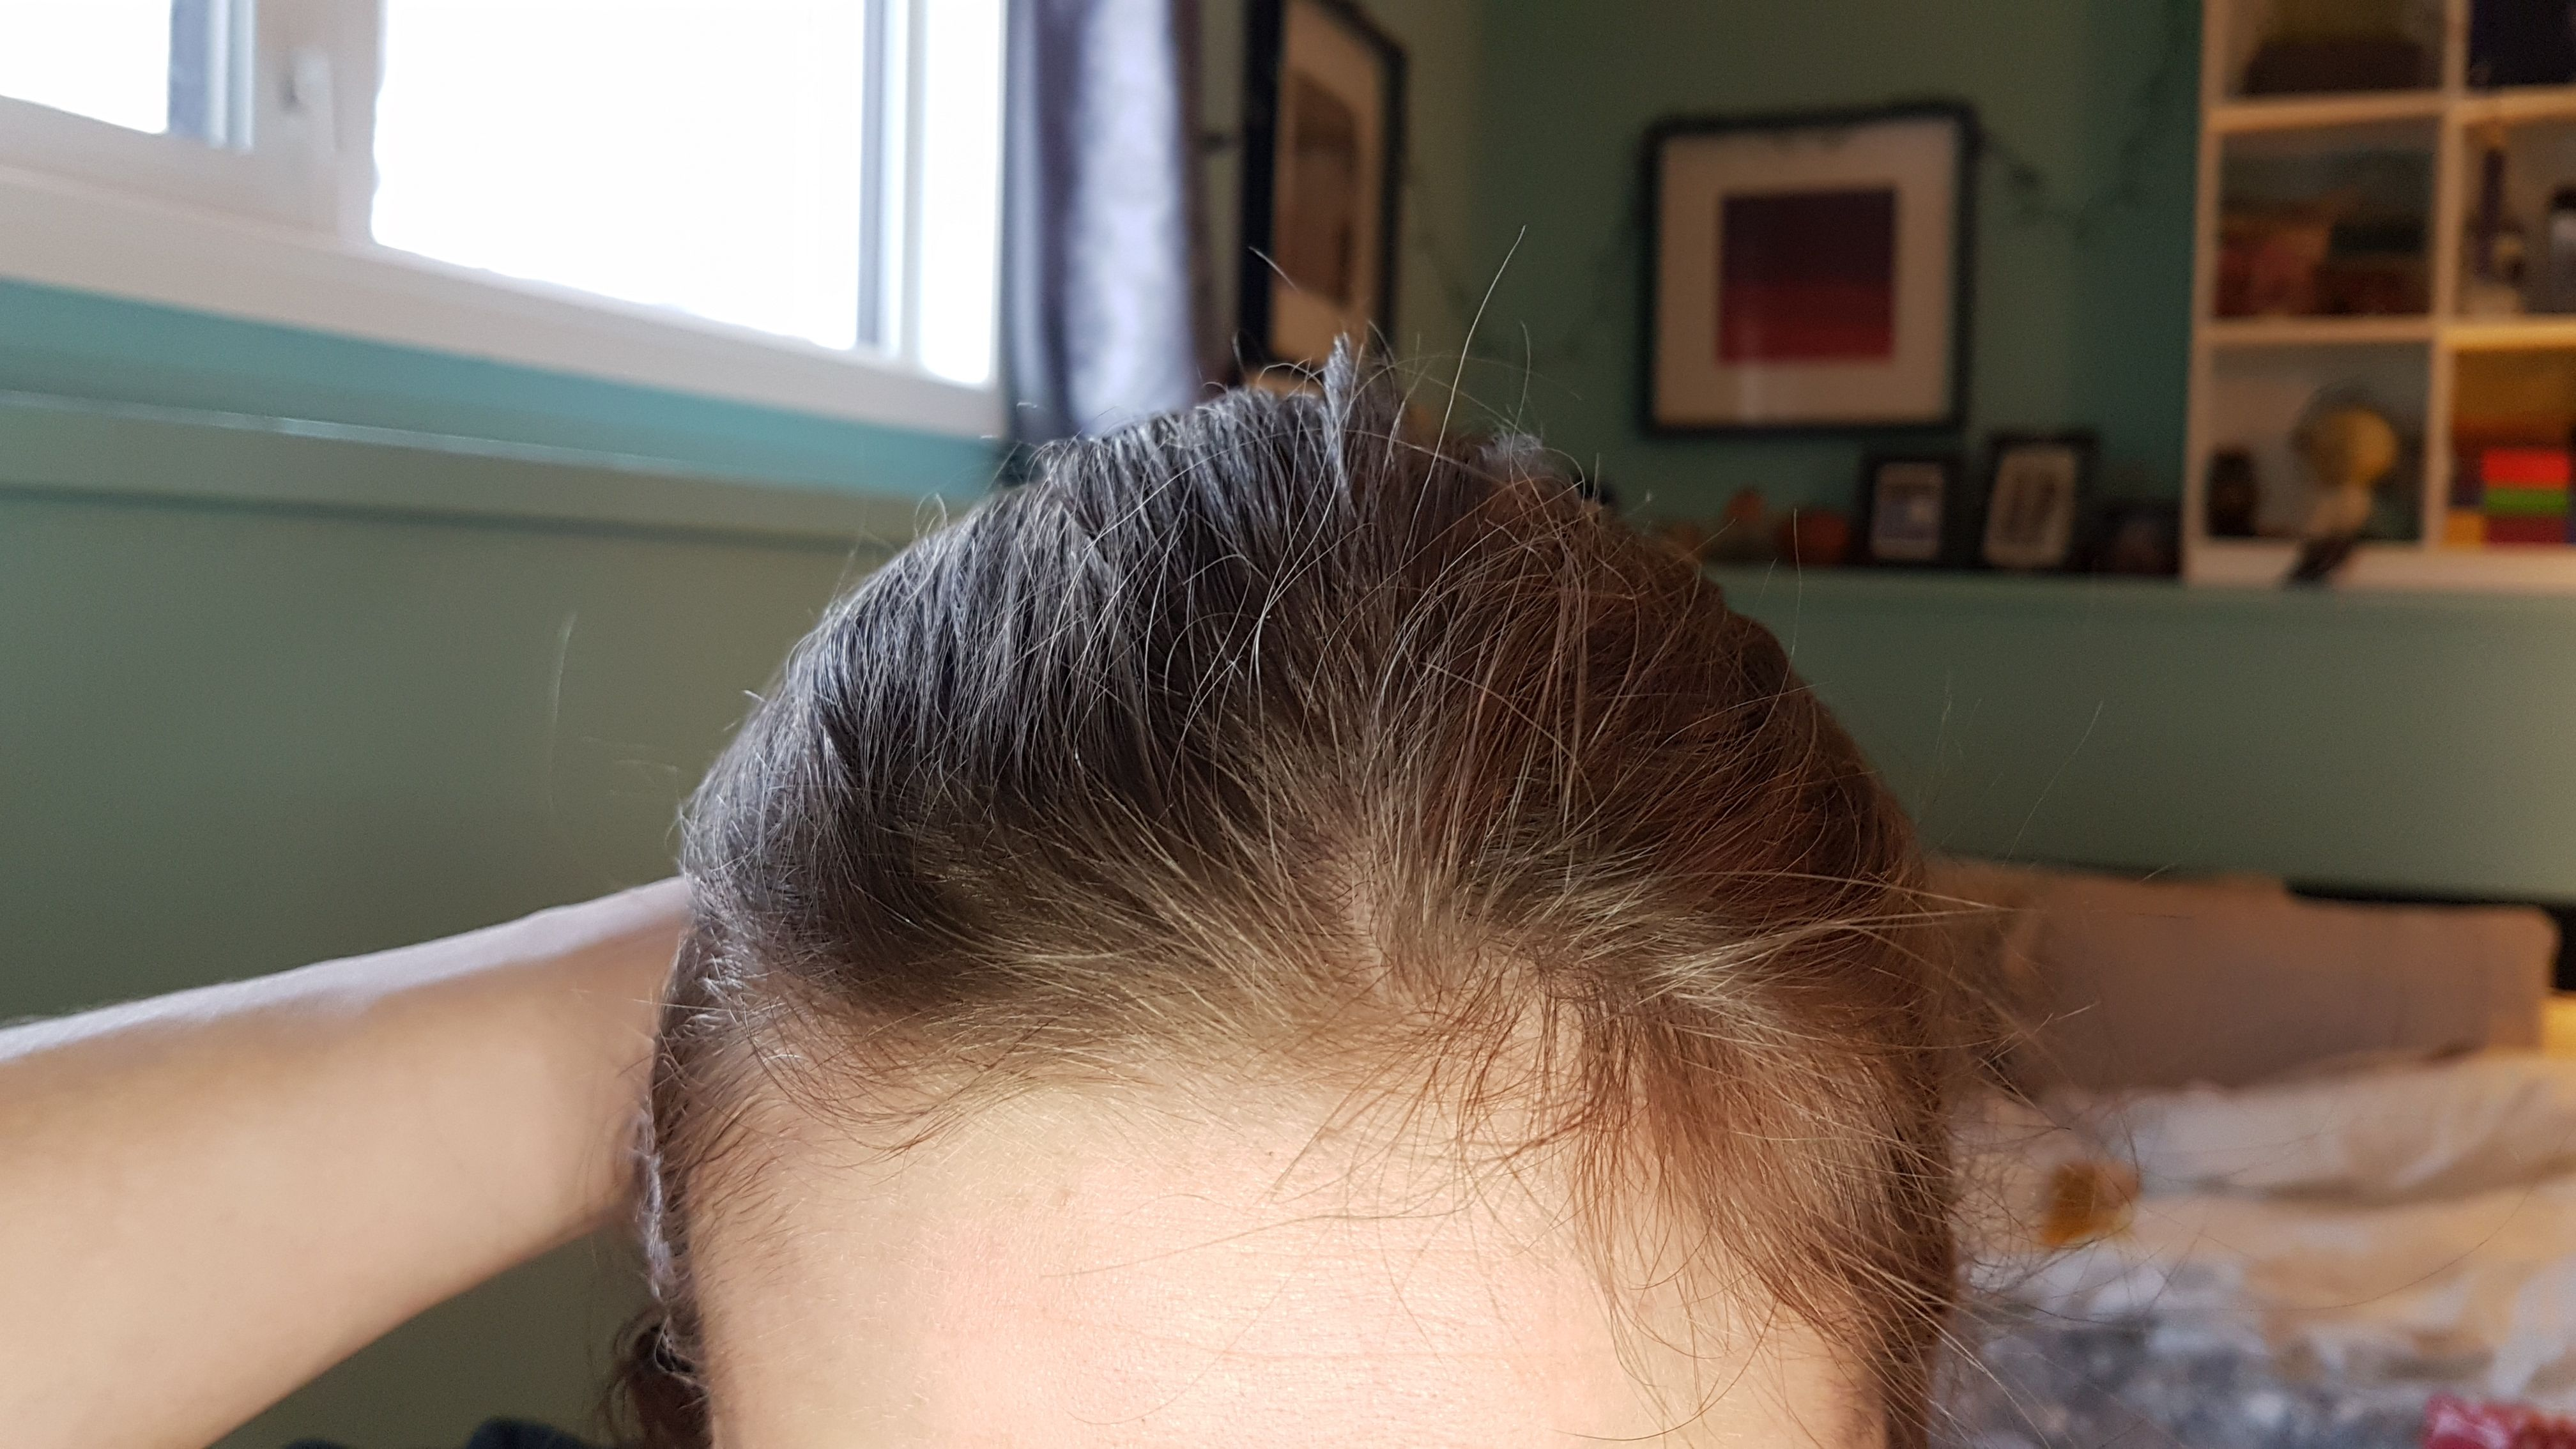 My hairline has always been weird like this. Does anyone